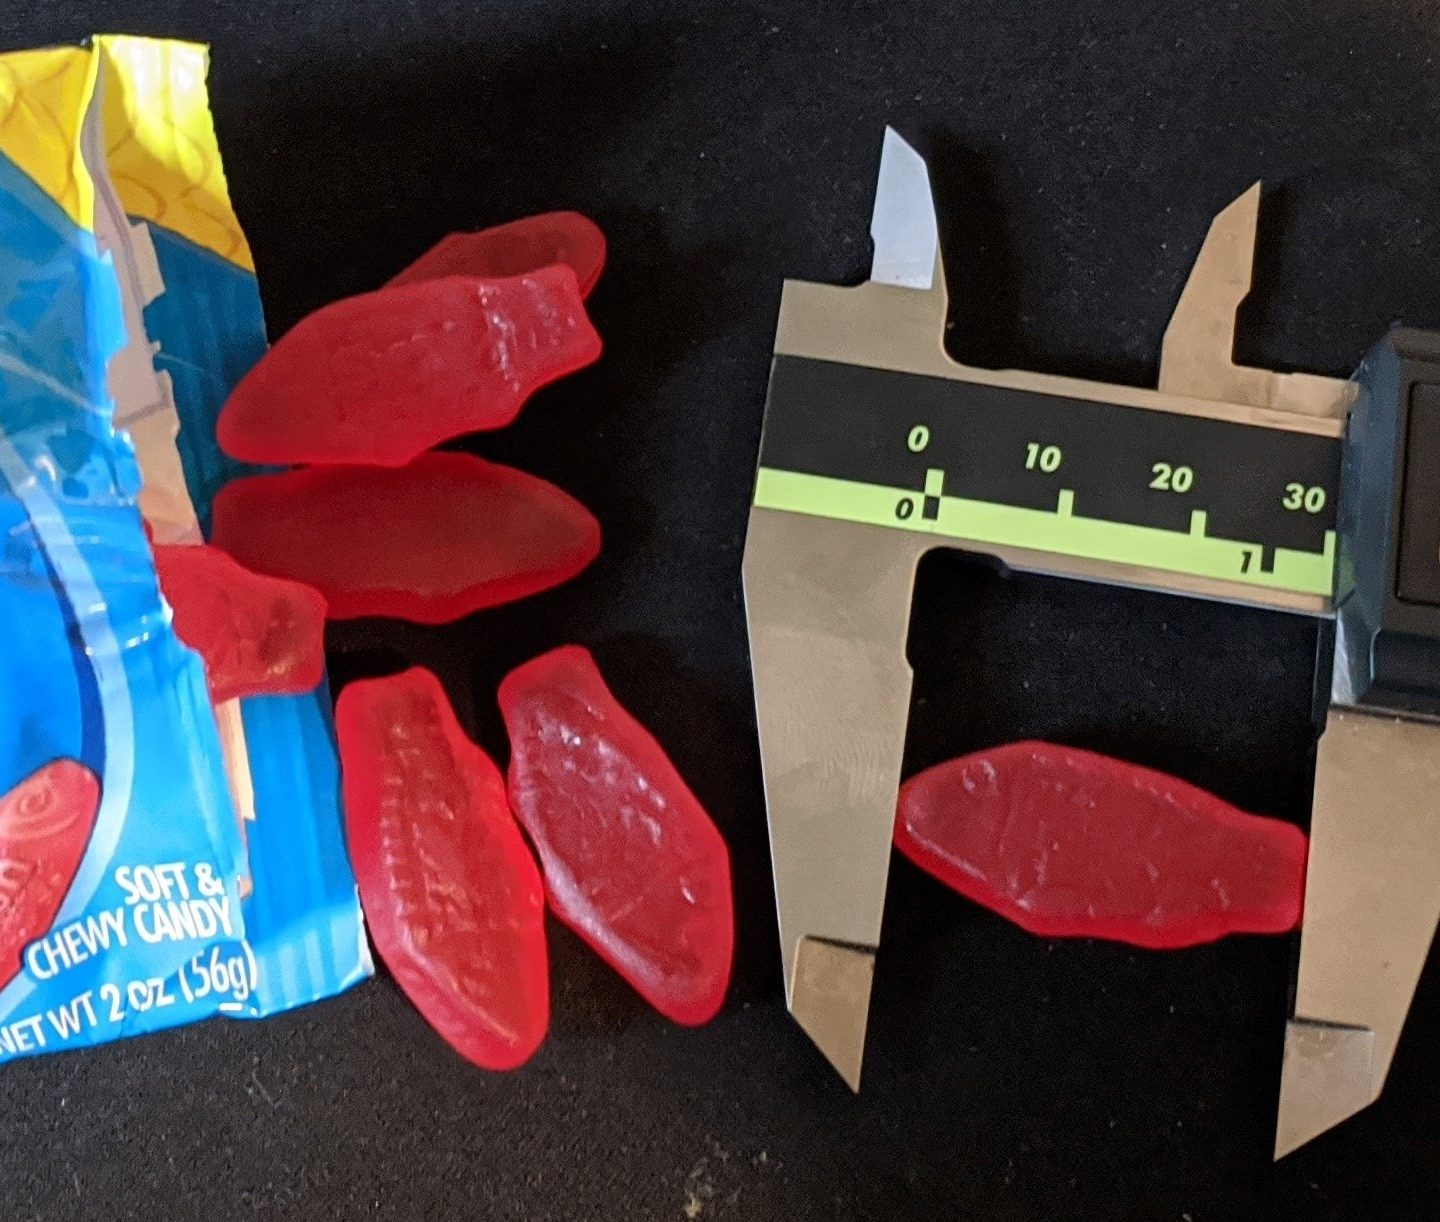 [5.2021]A Rainy Day with Swedish Fish: When McMaster-Carr is Missing a CAD model